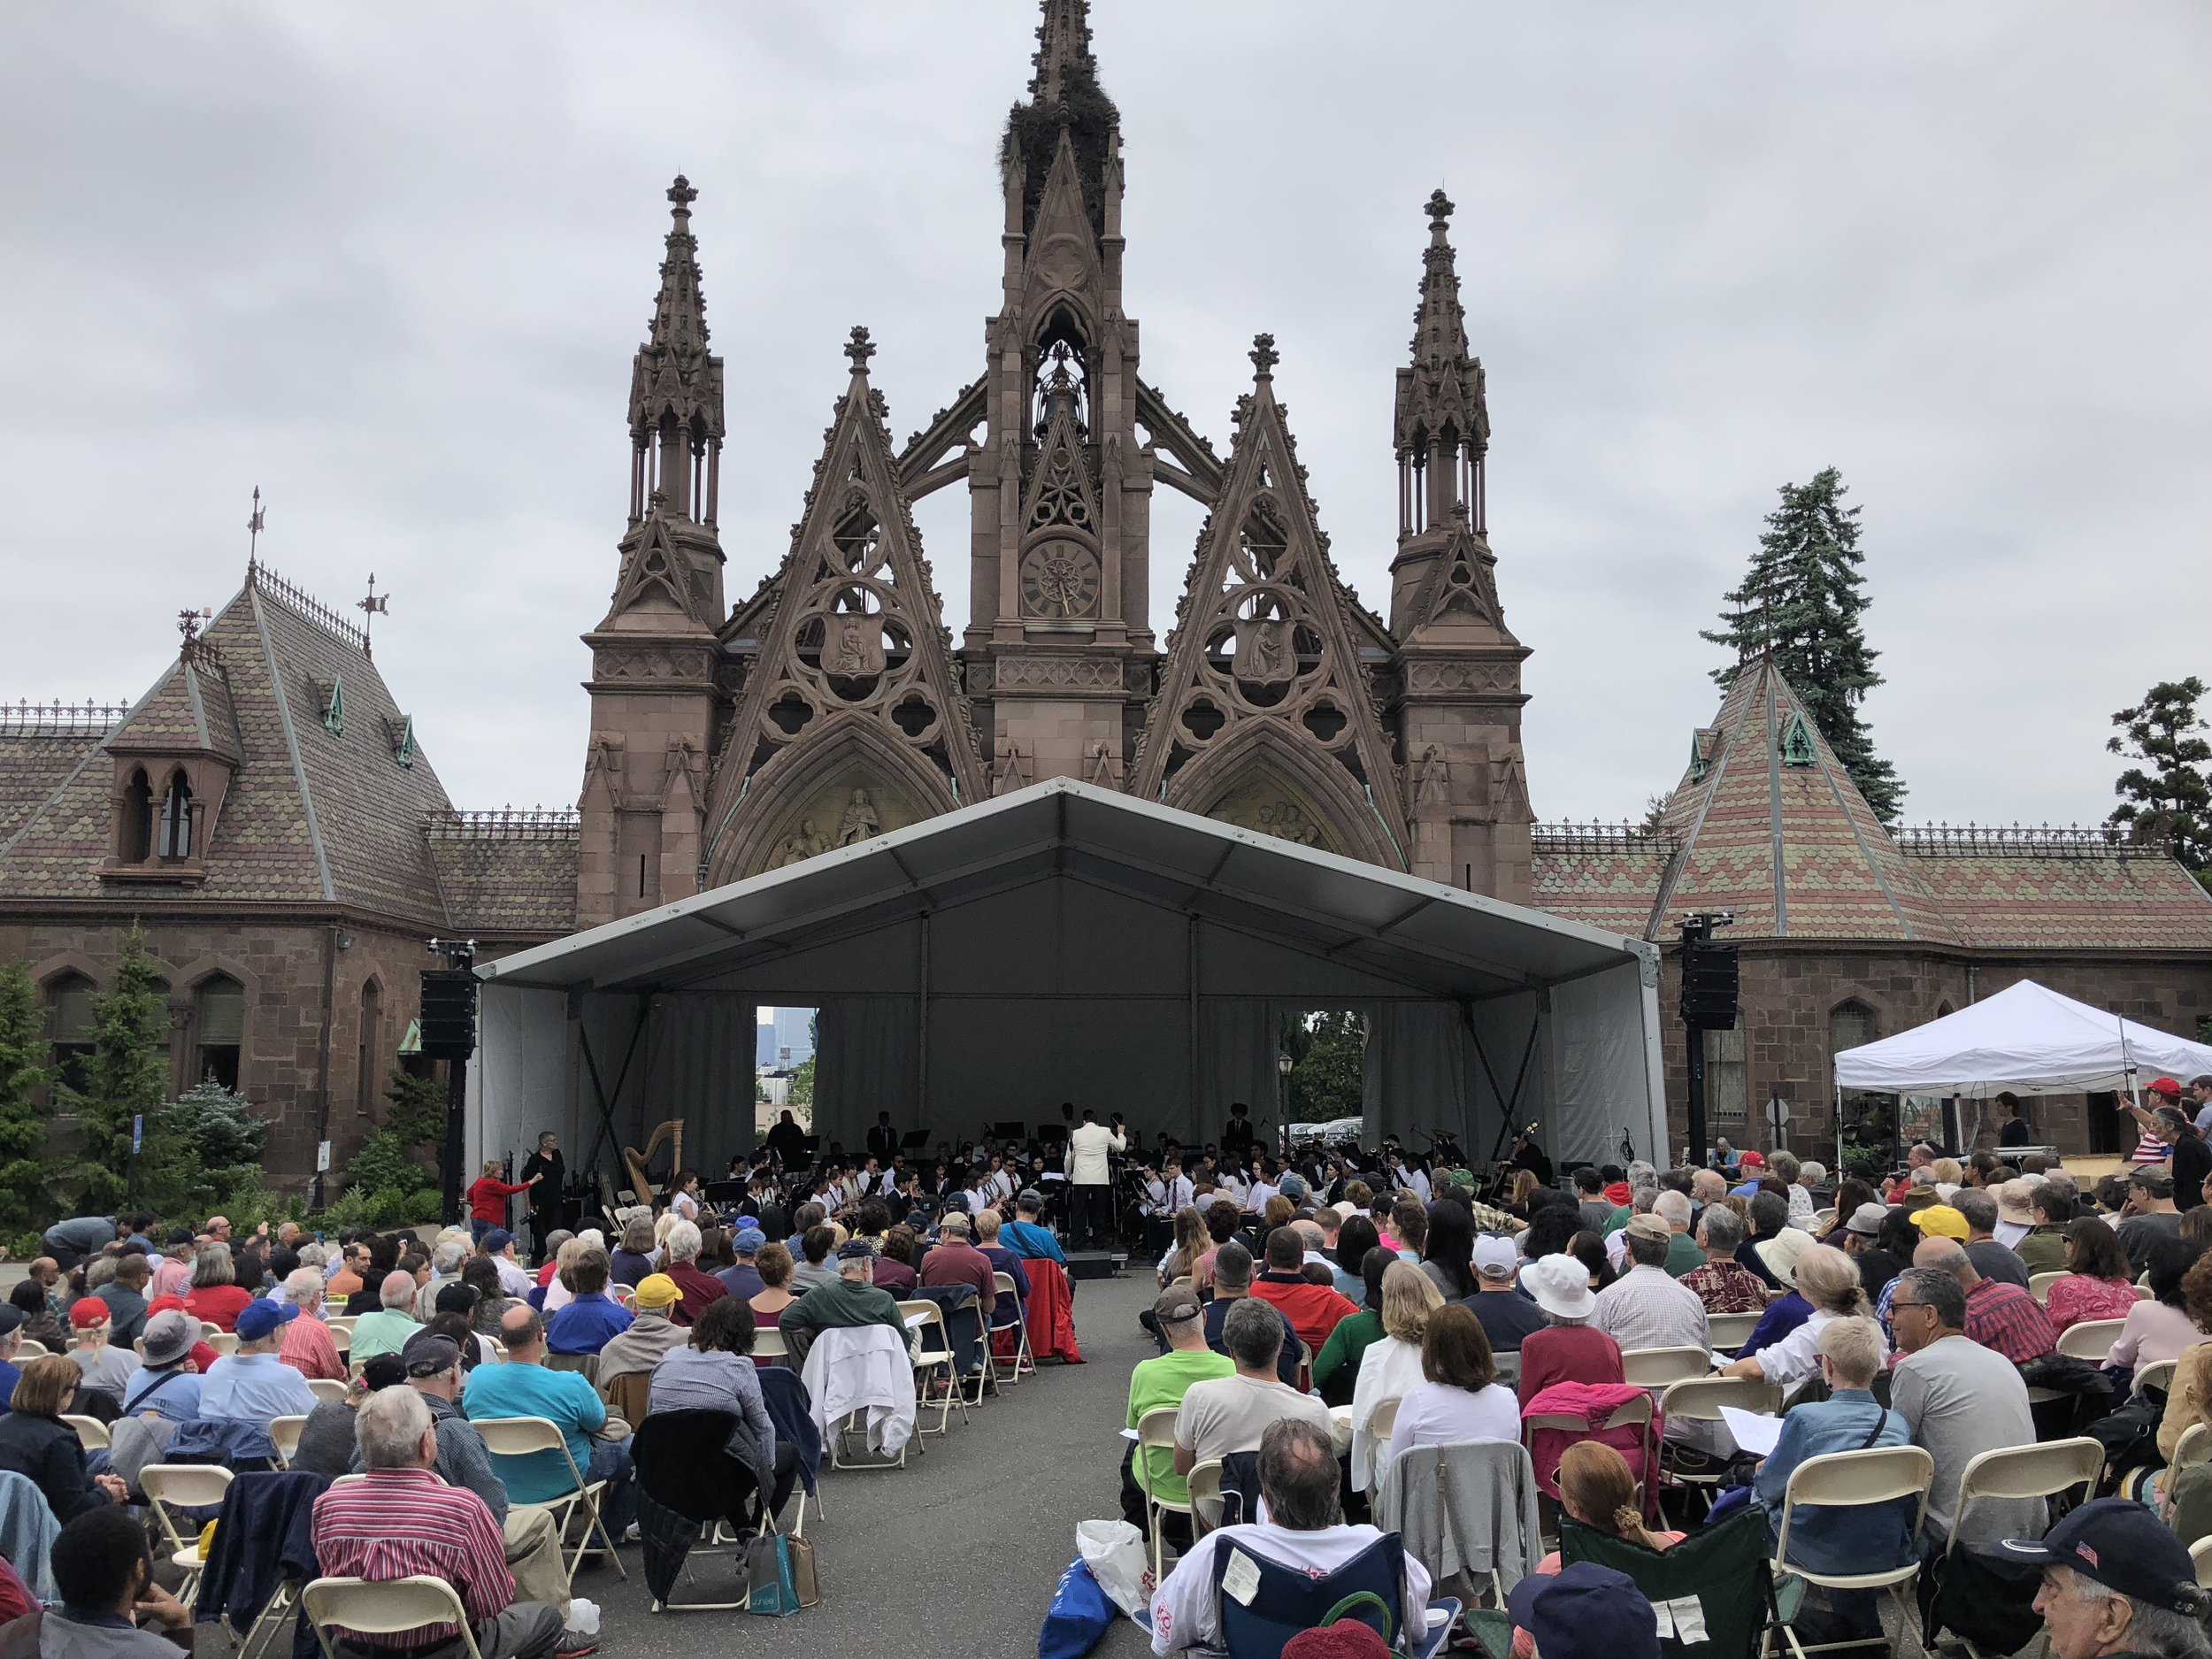 Audio for outdoor orchestral concert